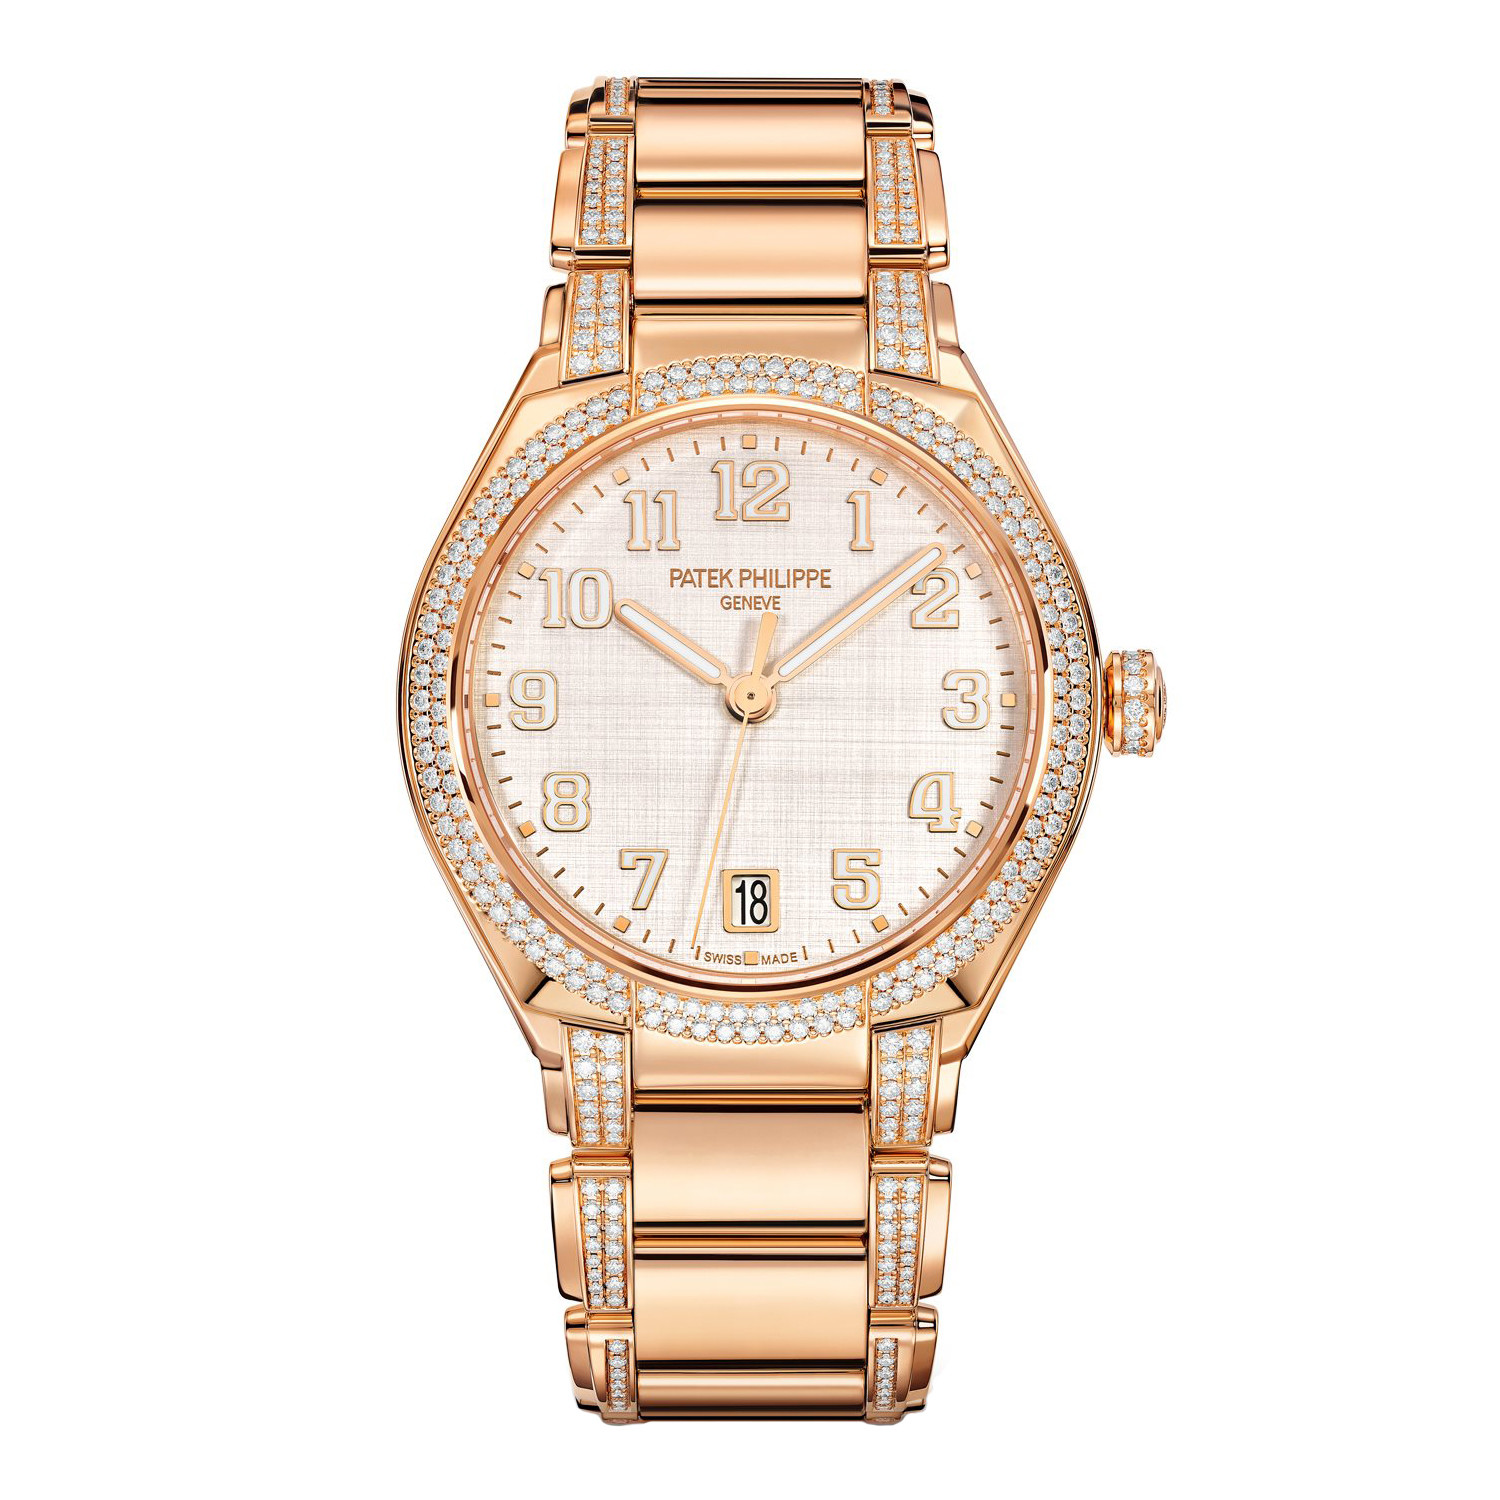 Twenty-4 Automatic Rose Gold (7300/1201R-001)